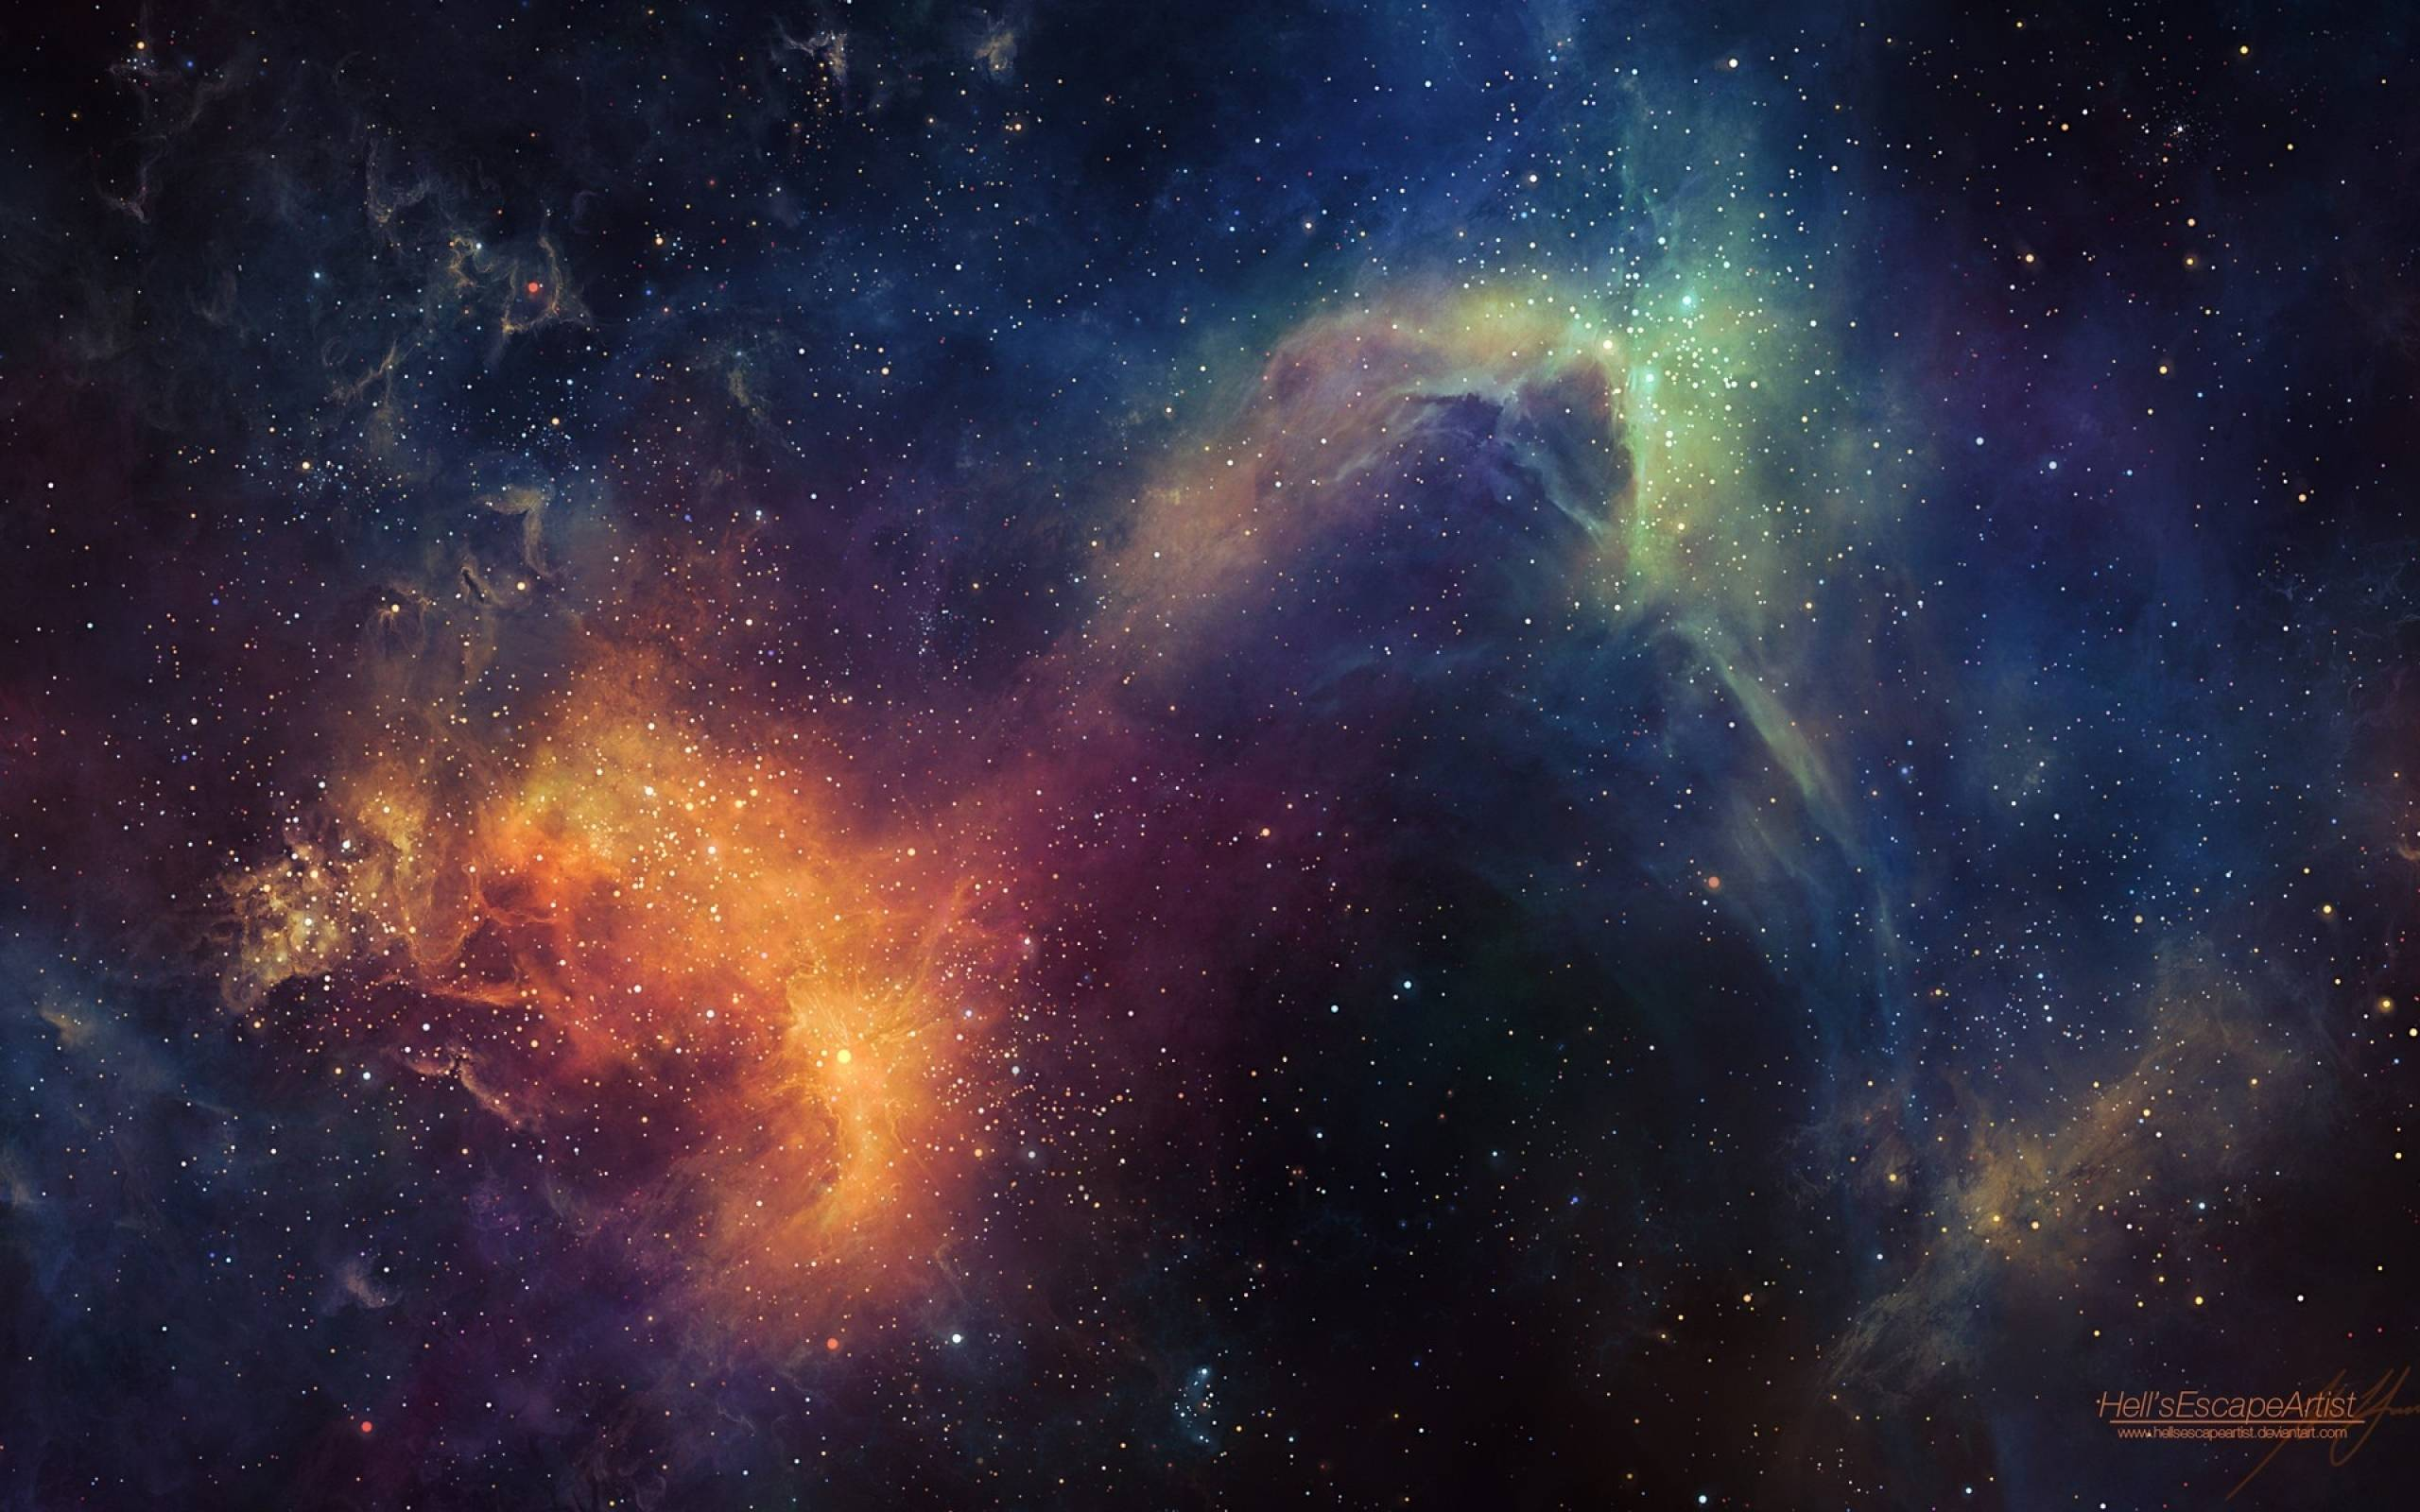 nasa space wallpaperscomputer wallpaper - photo #46